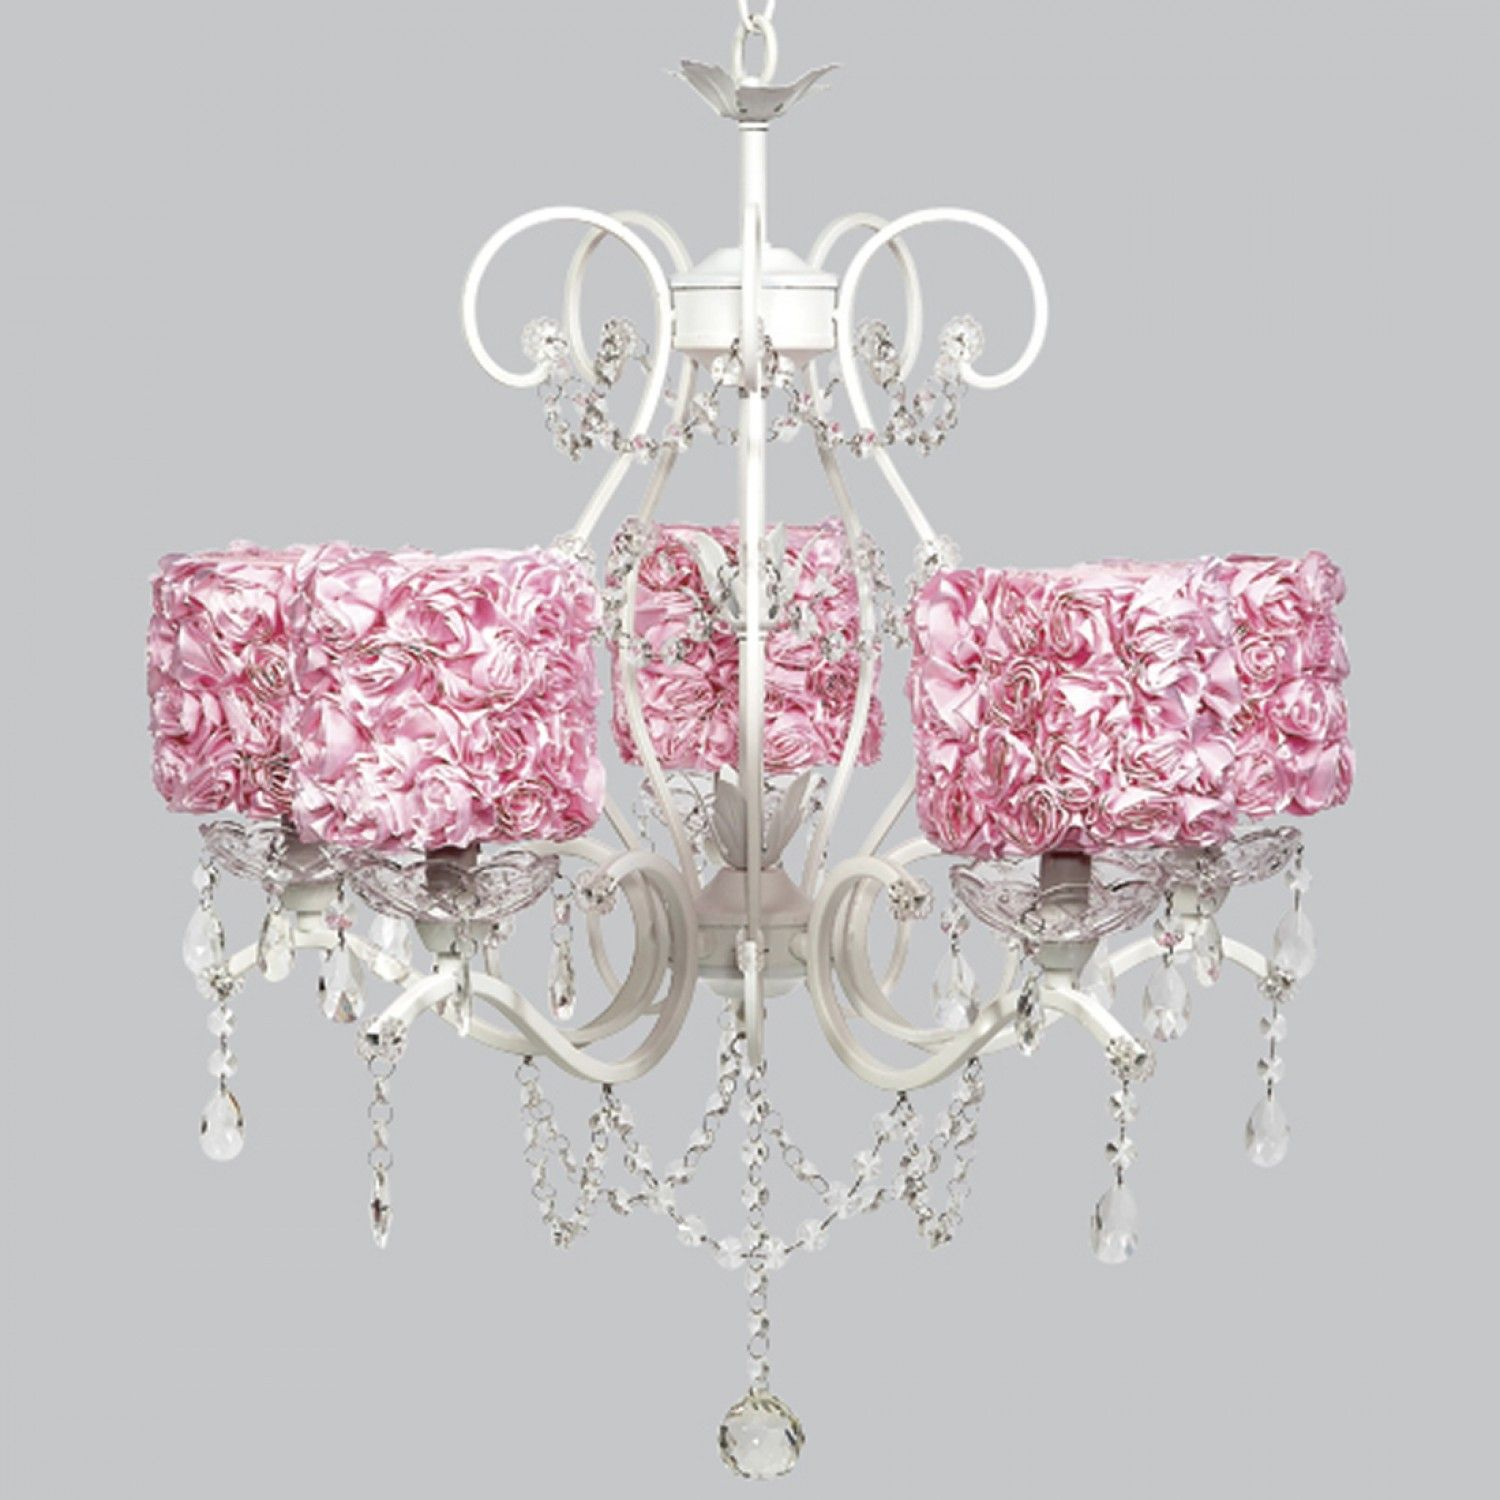 Painting of Chandelier Light Covers Ideas Furniture